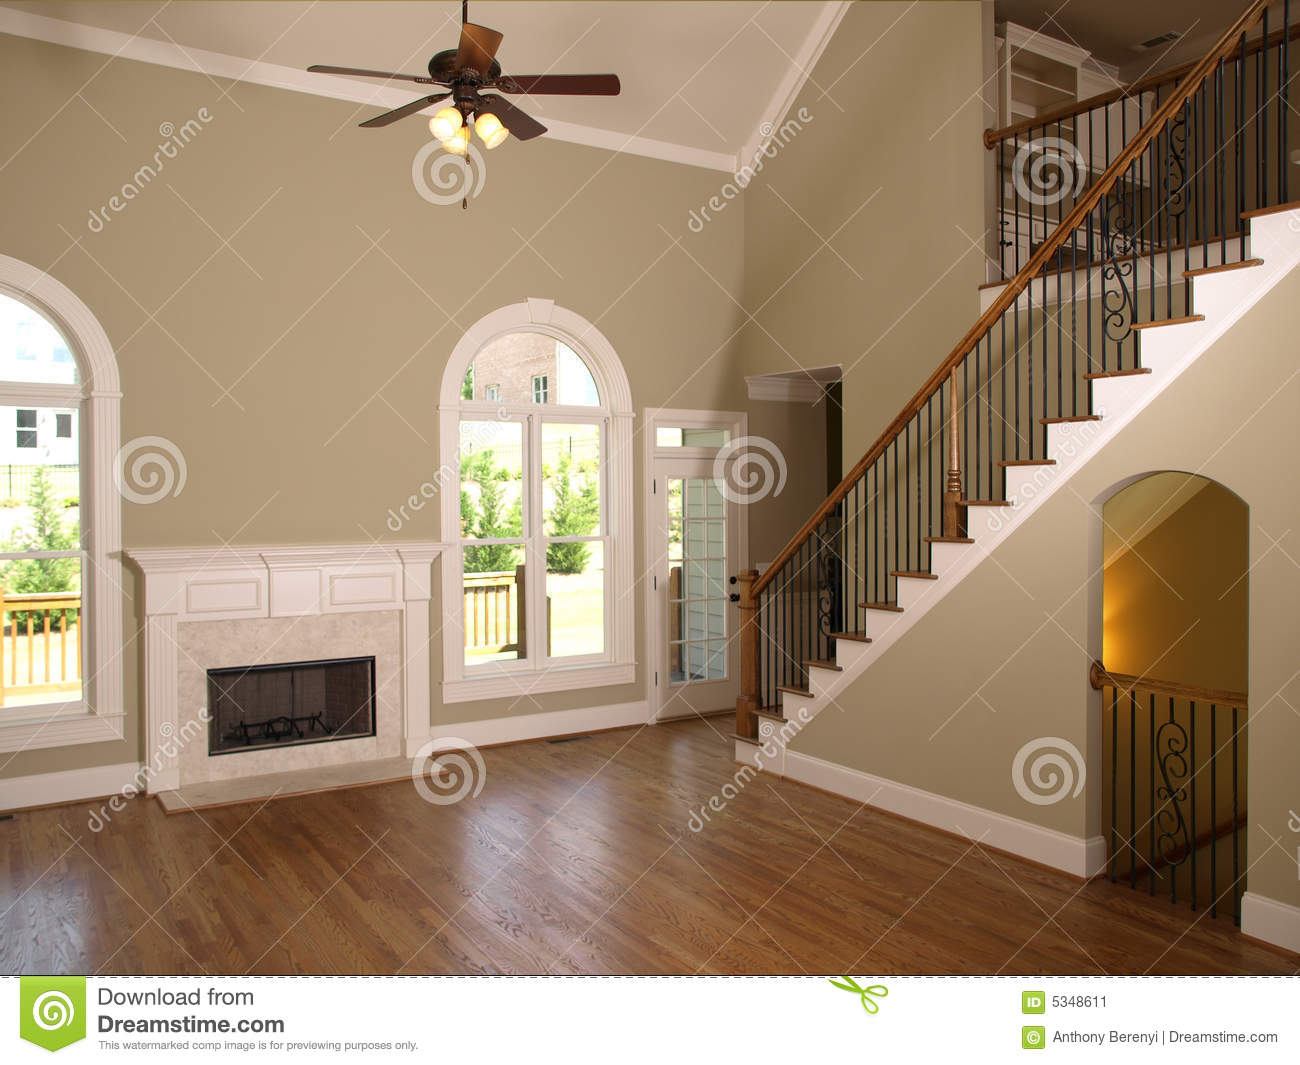 luxury model home living room staircase stock image image 5348611. Black Bedroom Furniture Sets. Home Design Ideas